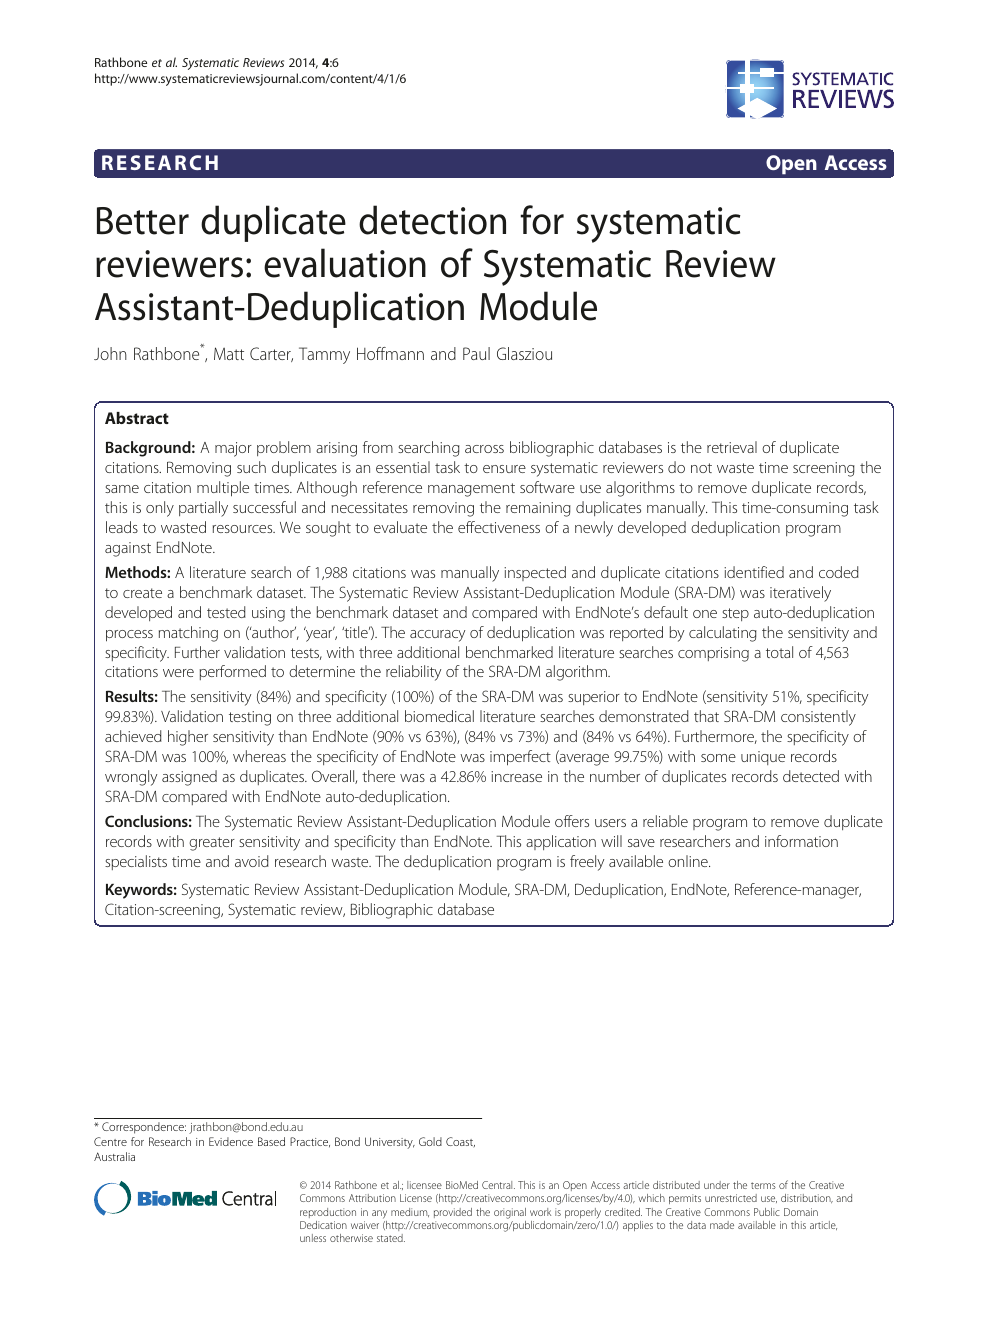 Better duplicate detection for systematic reviewers